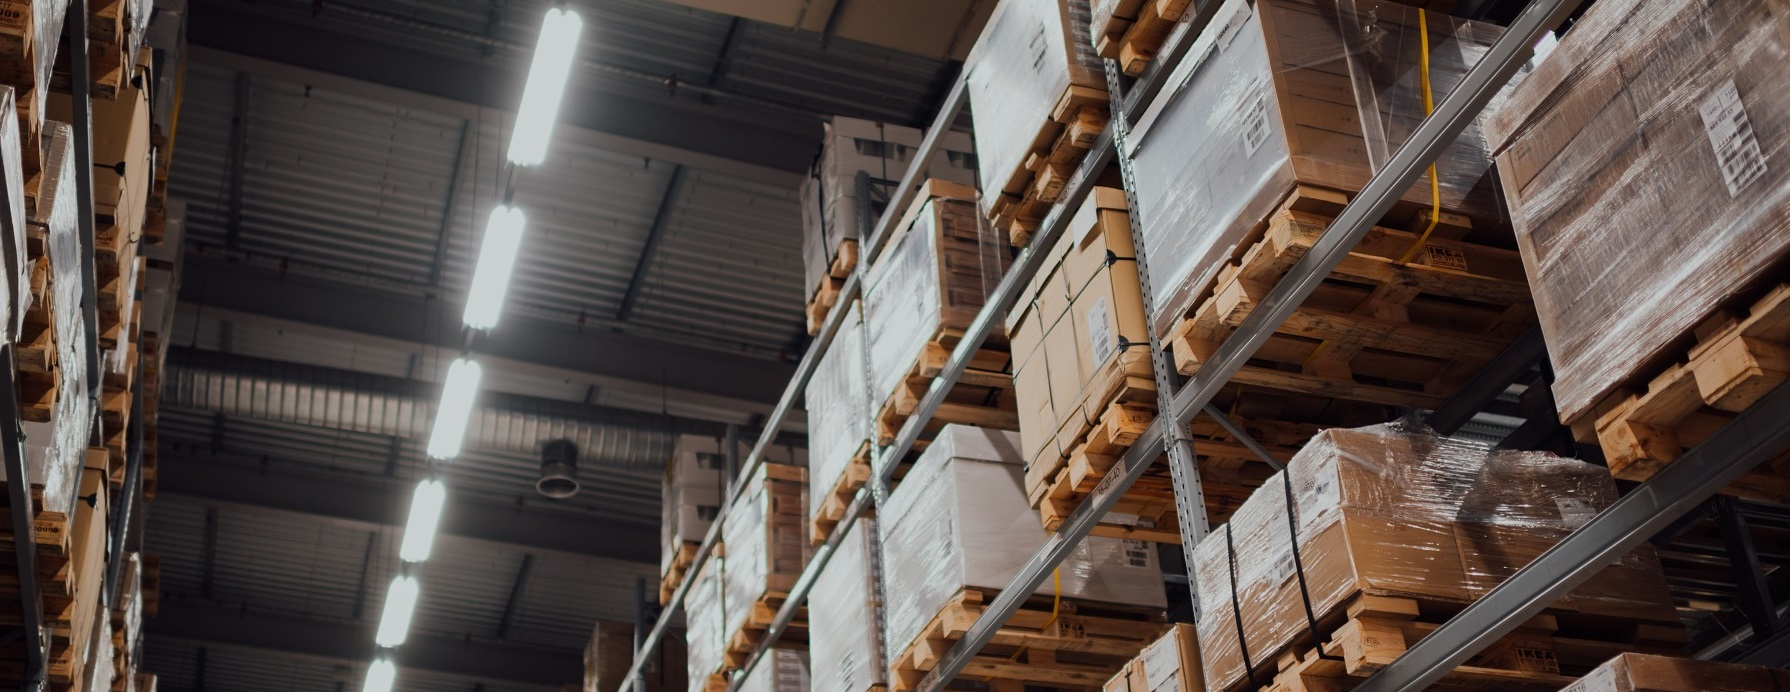 Improving Warehouse Fire Safety in Five Steps